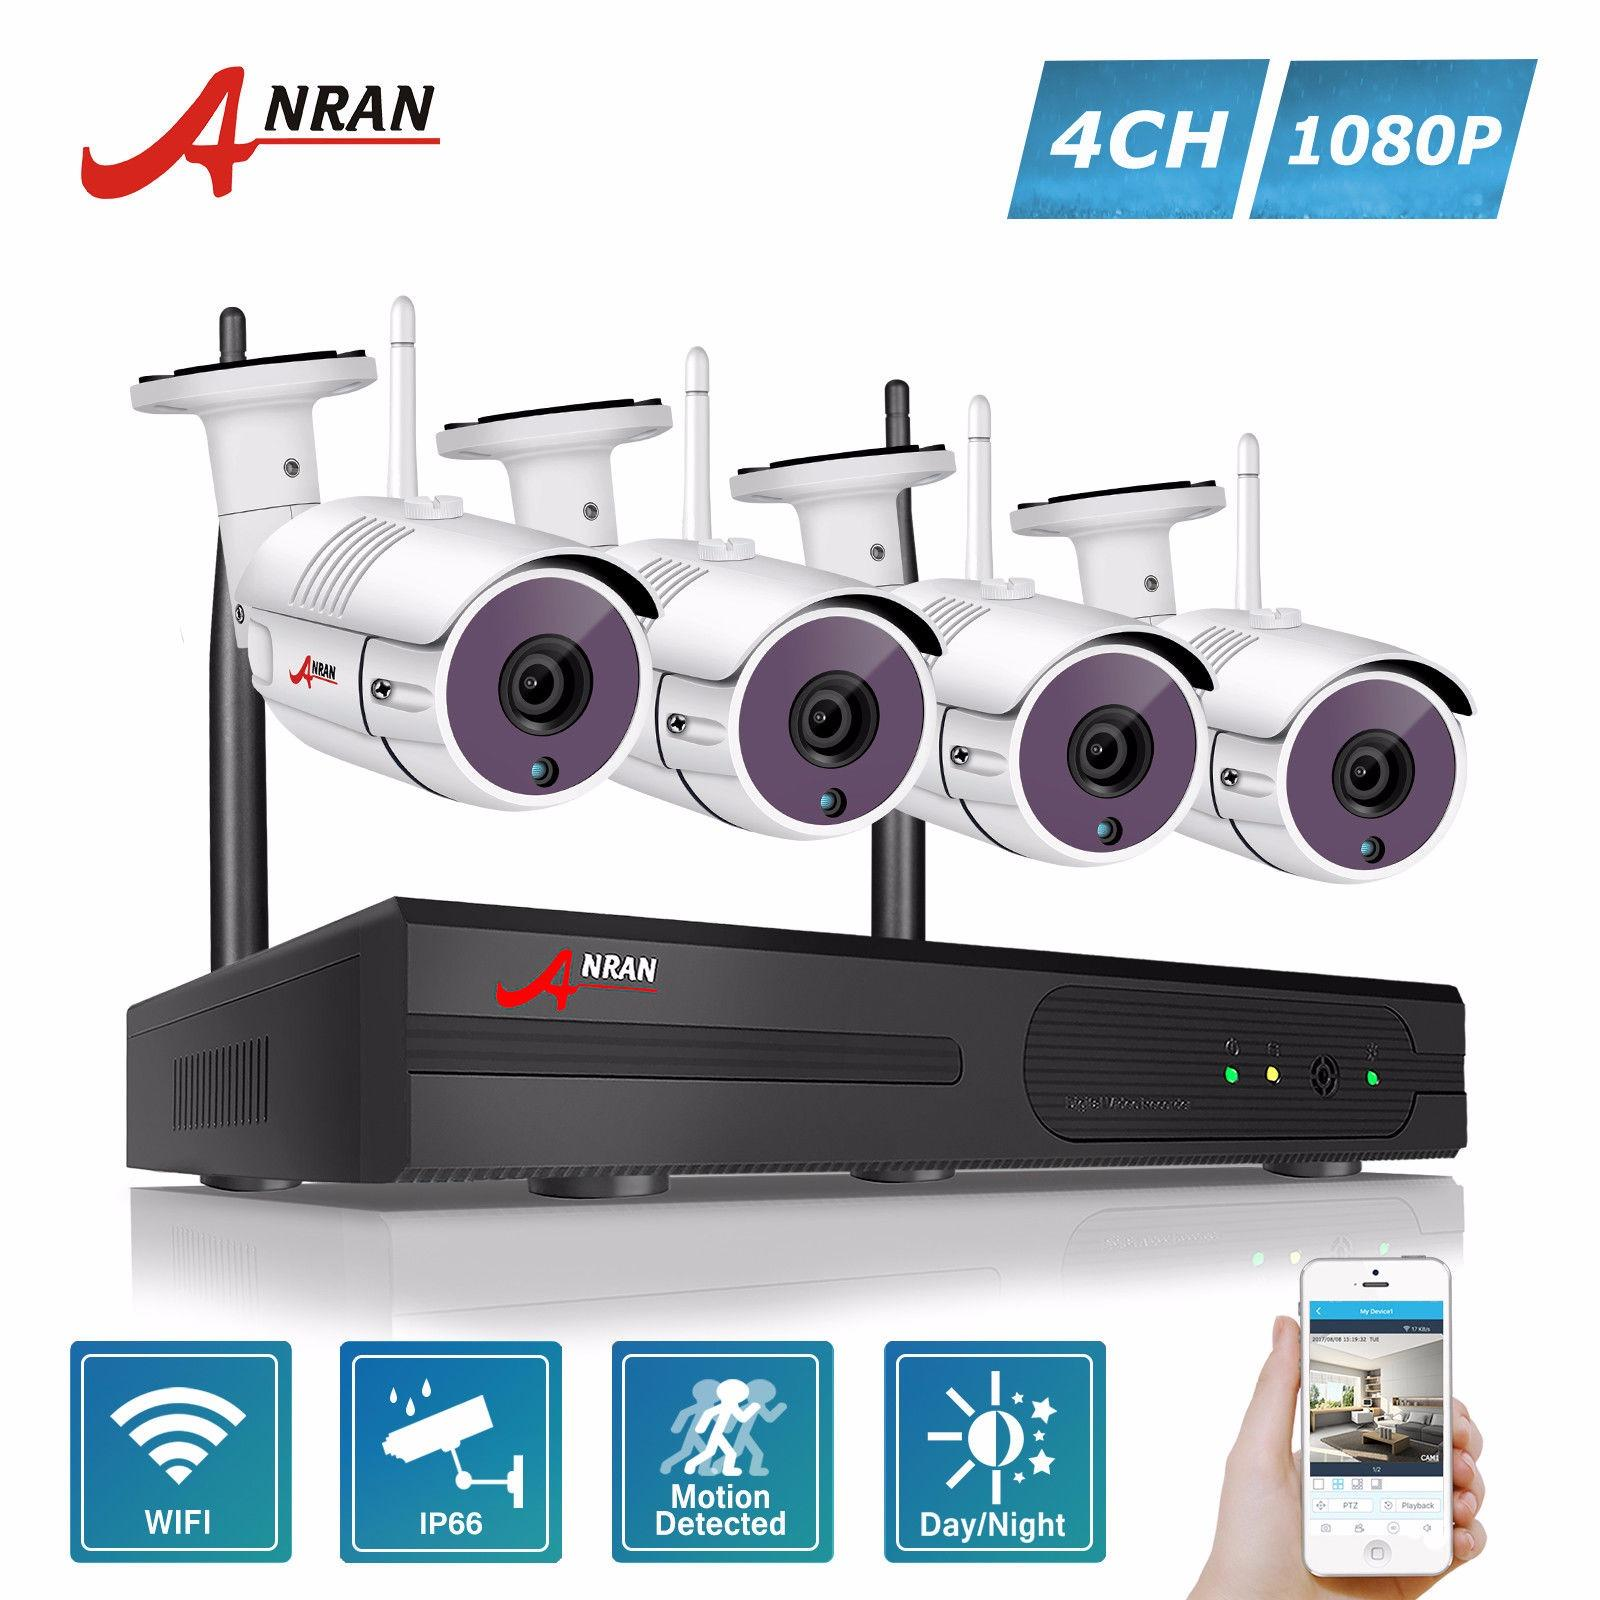 Jual Anran 4Ch Wireless Nvr Security Cctv System P2P 1080P Hd Outdoor Vandalproof Wfi Ip Camera Ori